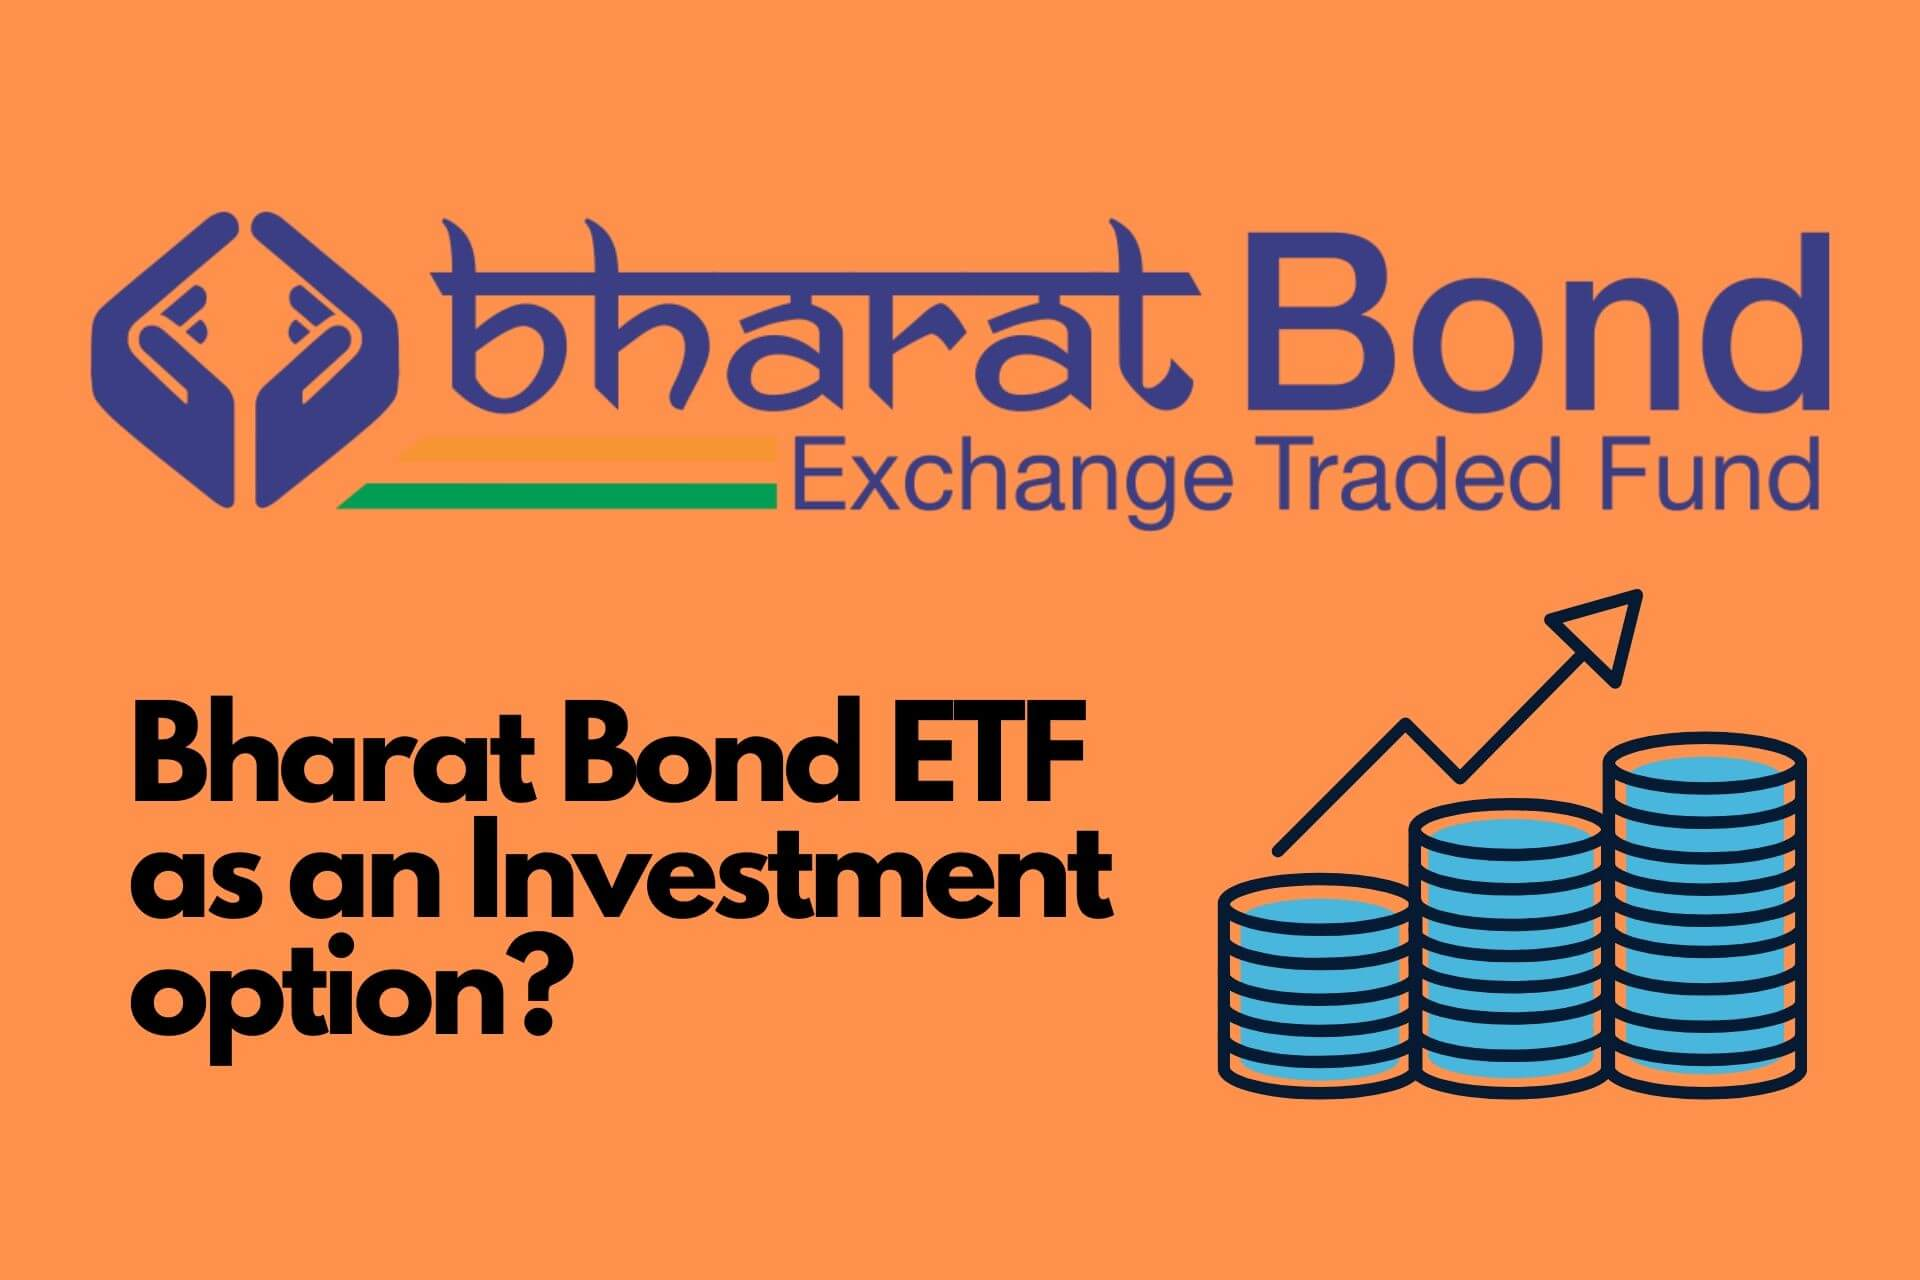 What is Bharat Bond ETF And is it a good Investment option